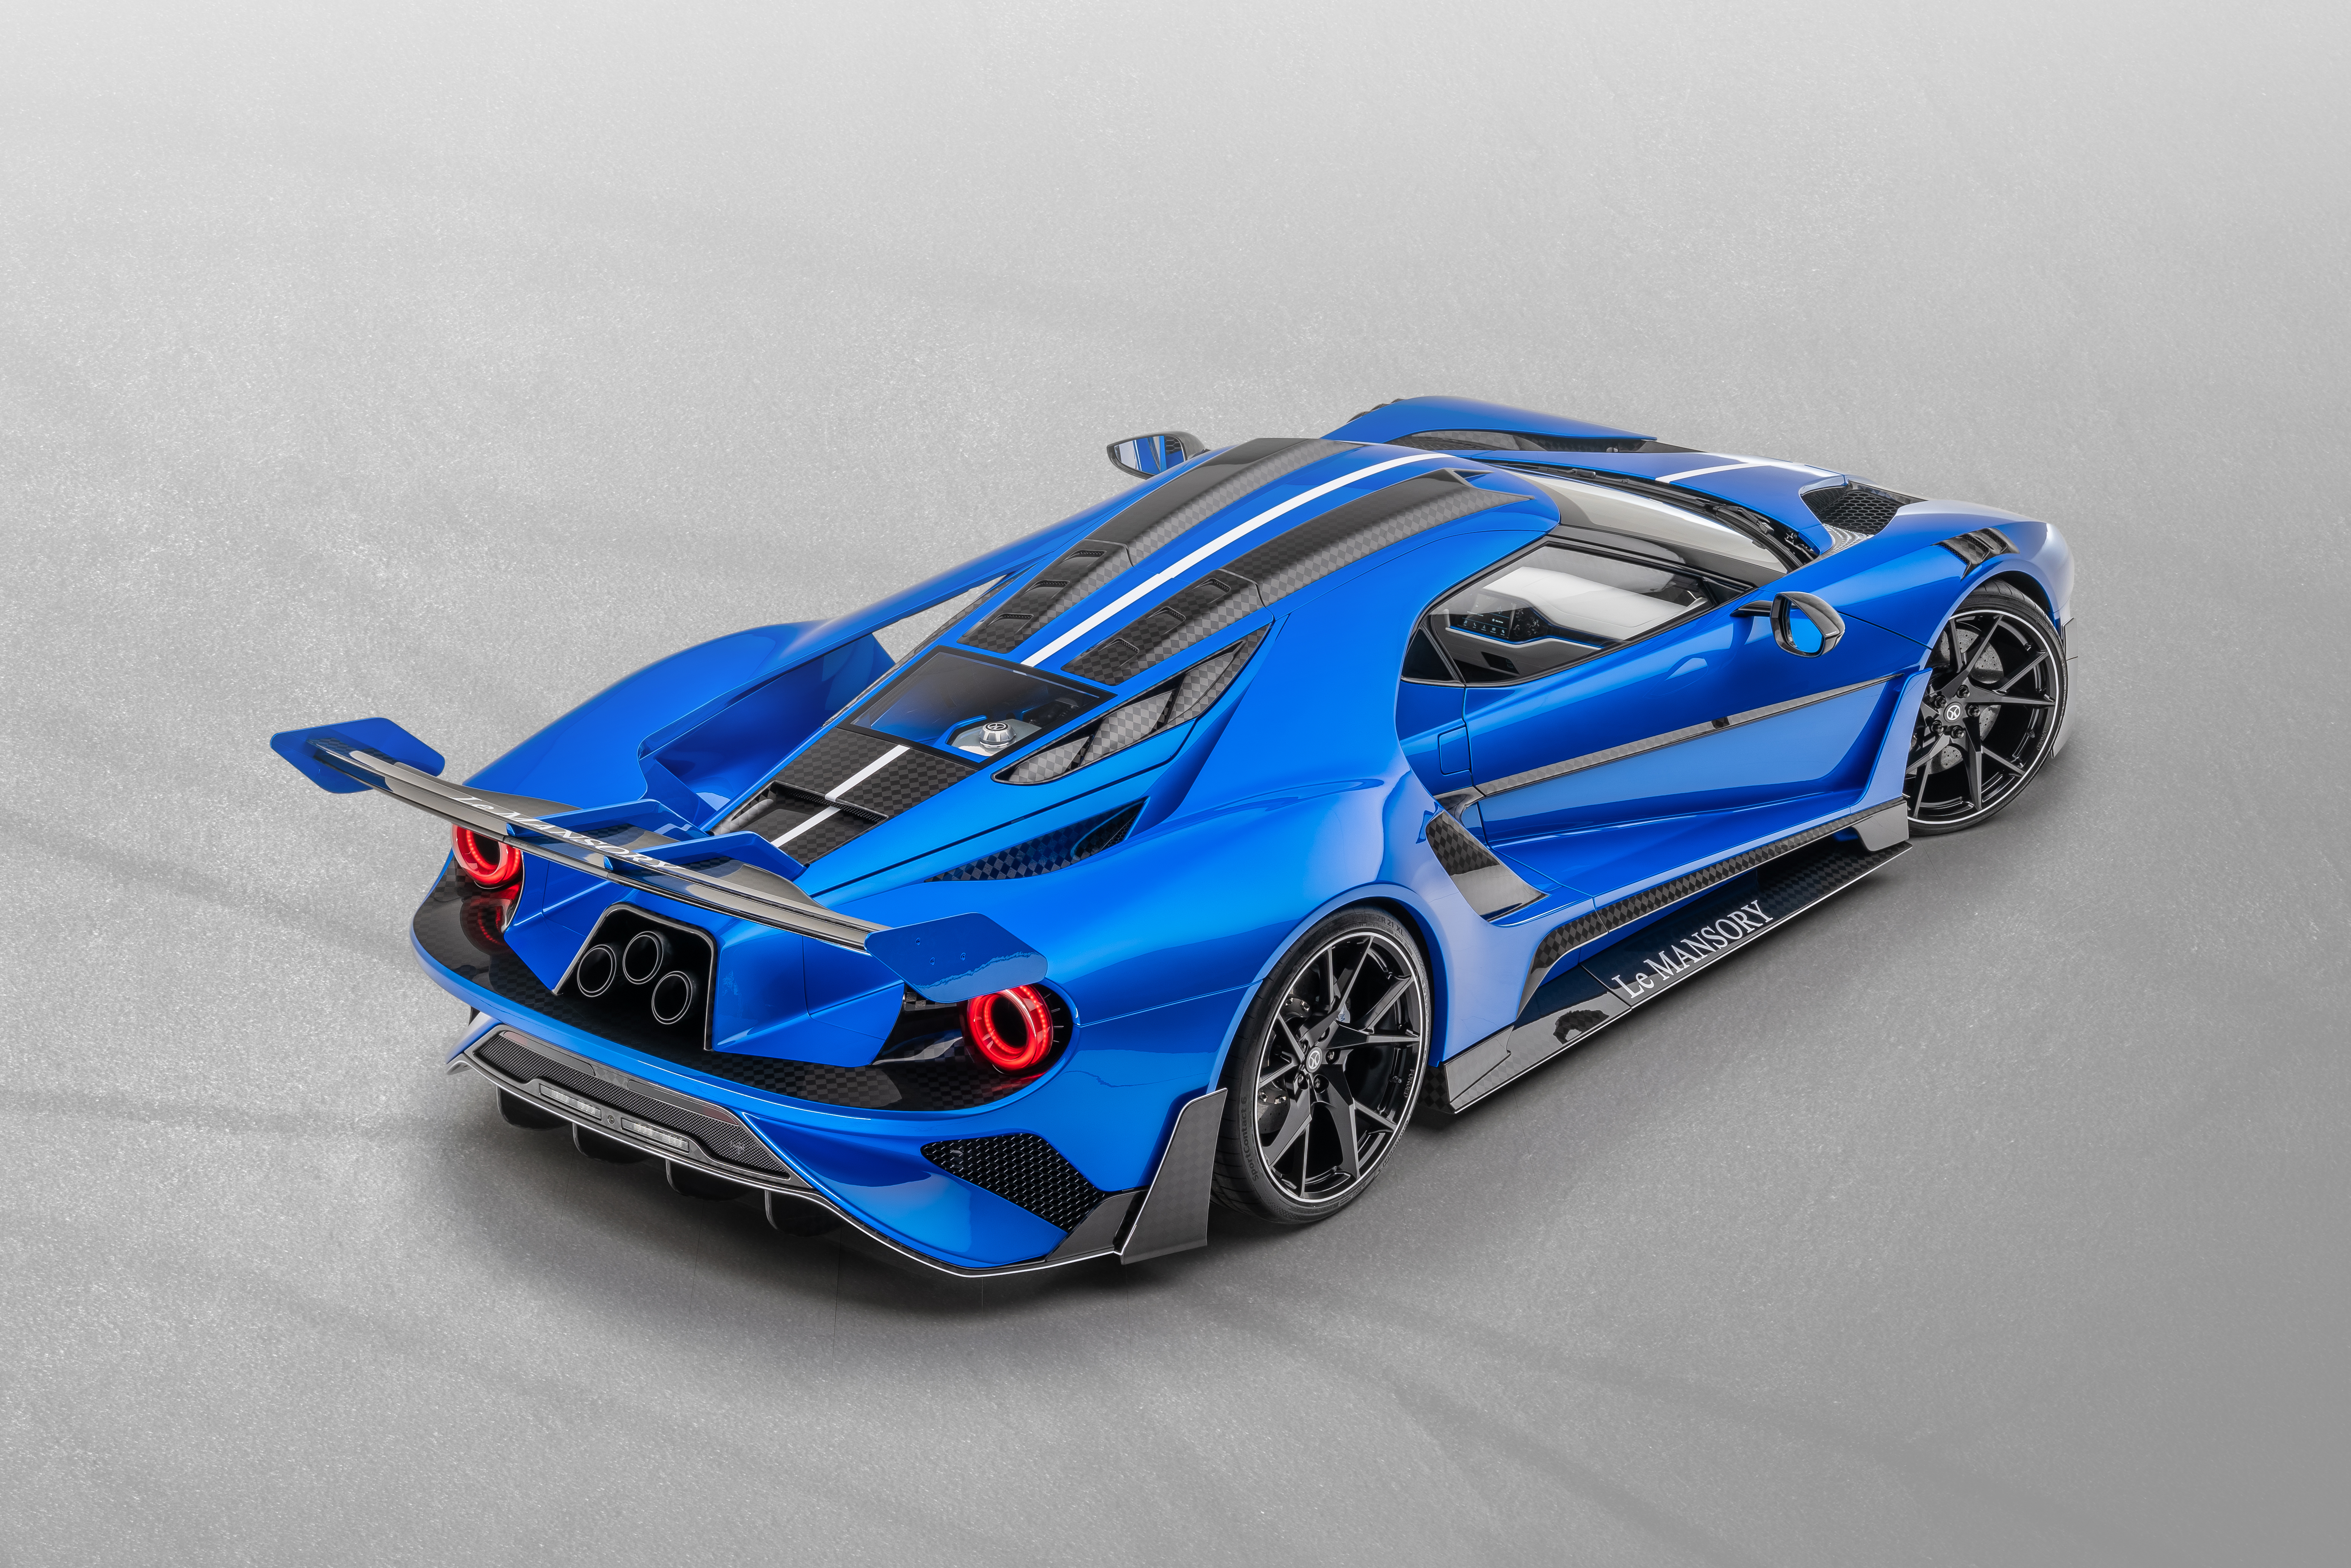 mansory le mansory 2020 4k 1608818807 - Mansory Le MANSORY 2020 4k - Mansory Le MANSORY 2020 4k wallpapers